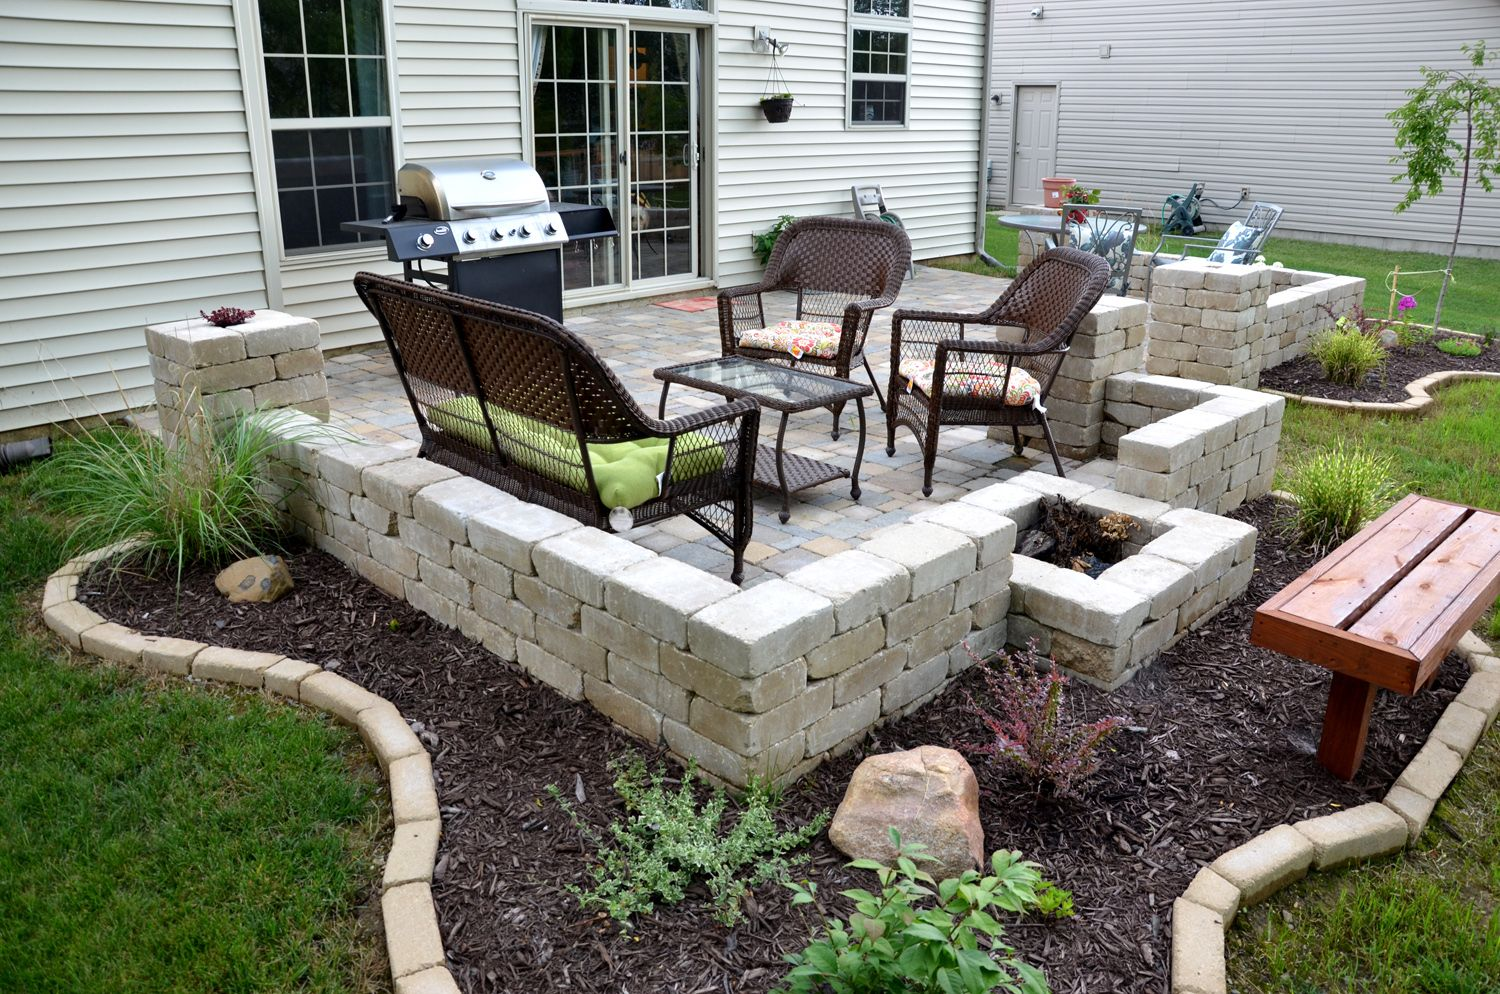 Diy Outdoor Patio Designs | Patios, Backyard and Paver stone patio